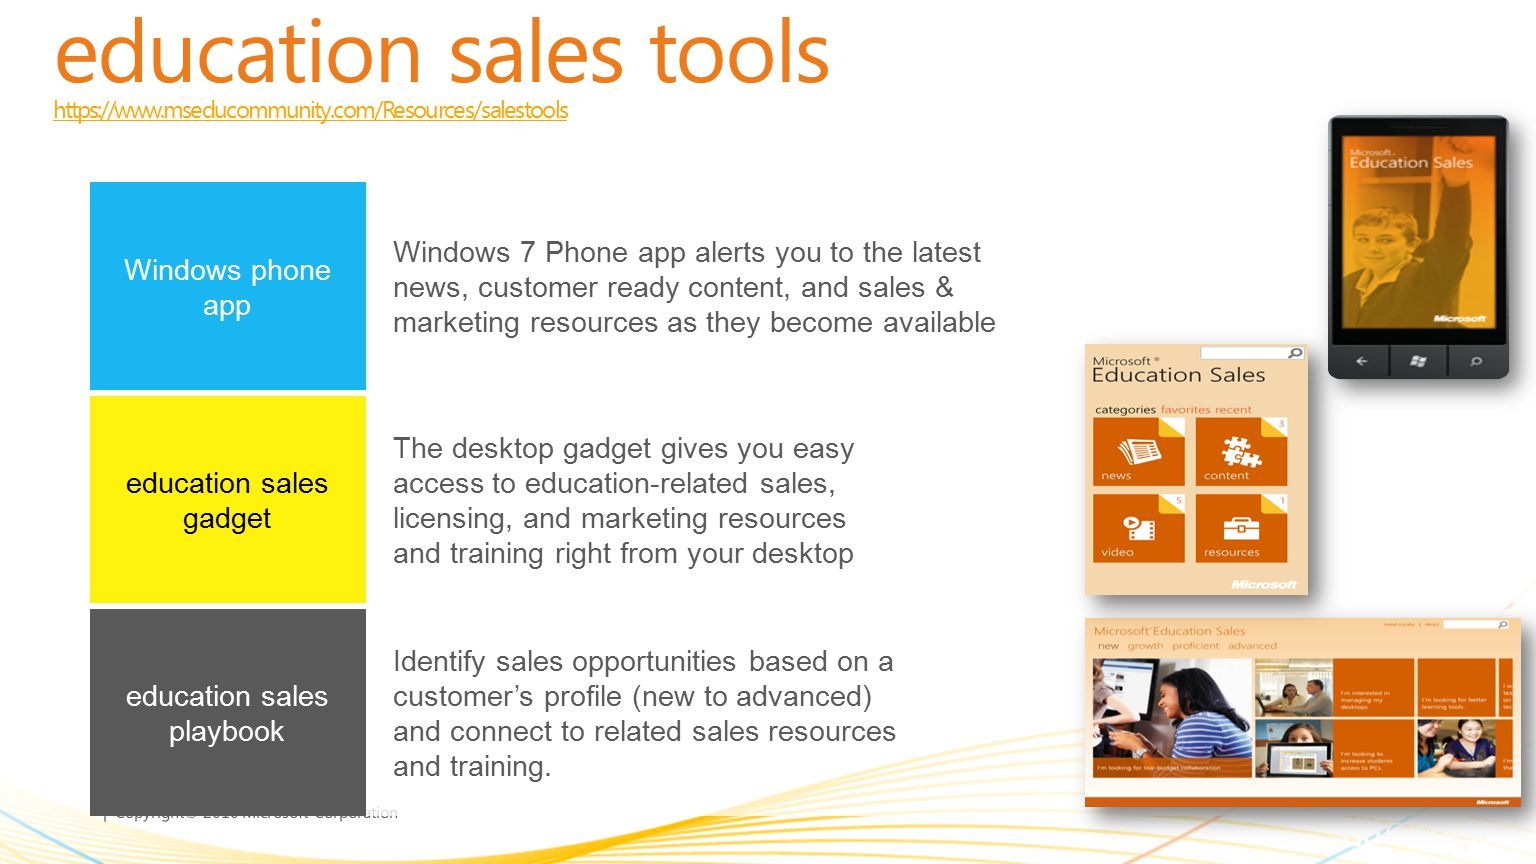 | Copyright© 2010 Microsoft Corporation education sales tools https://www.mseducommunity.com/Resources/salestools https://www.mseducommunity.com/Resources/salestools Windows 7 Phone app alerts you to the latest news, customer ready content, and sales & marketing resources as they become available Windows phone app The desktop gadget gives you easy access to education-related sales, licensing, and marketing resources and training right from your desktop education sales gadget Identify sales opportunities based on a customer's profile (new to advanced) and connect to related sales resources and training.